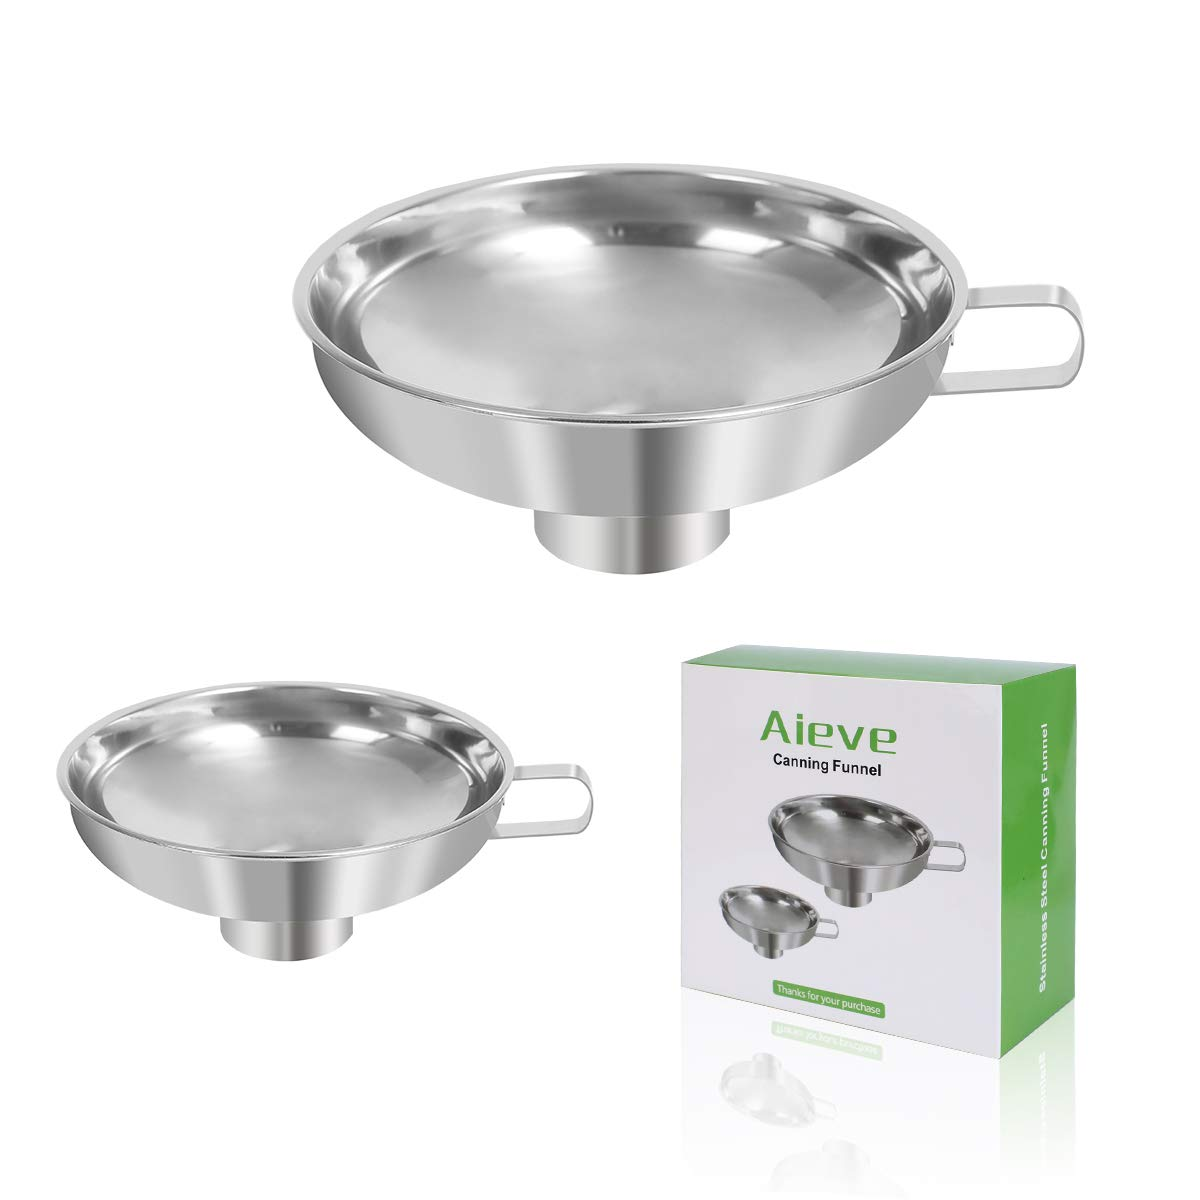 Canning Funnel,2 Pack Mason Jar Canning Funnel for Wide and Regular Jars,Stainless Steel Funnel Kitchen Funnel Set for Mason Jars Canning Jars Transferring Liquid and Dry Ingredients(Small and Large) by AIEVE